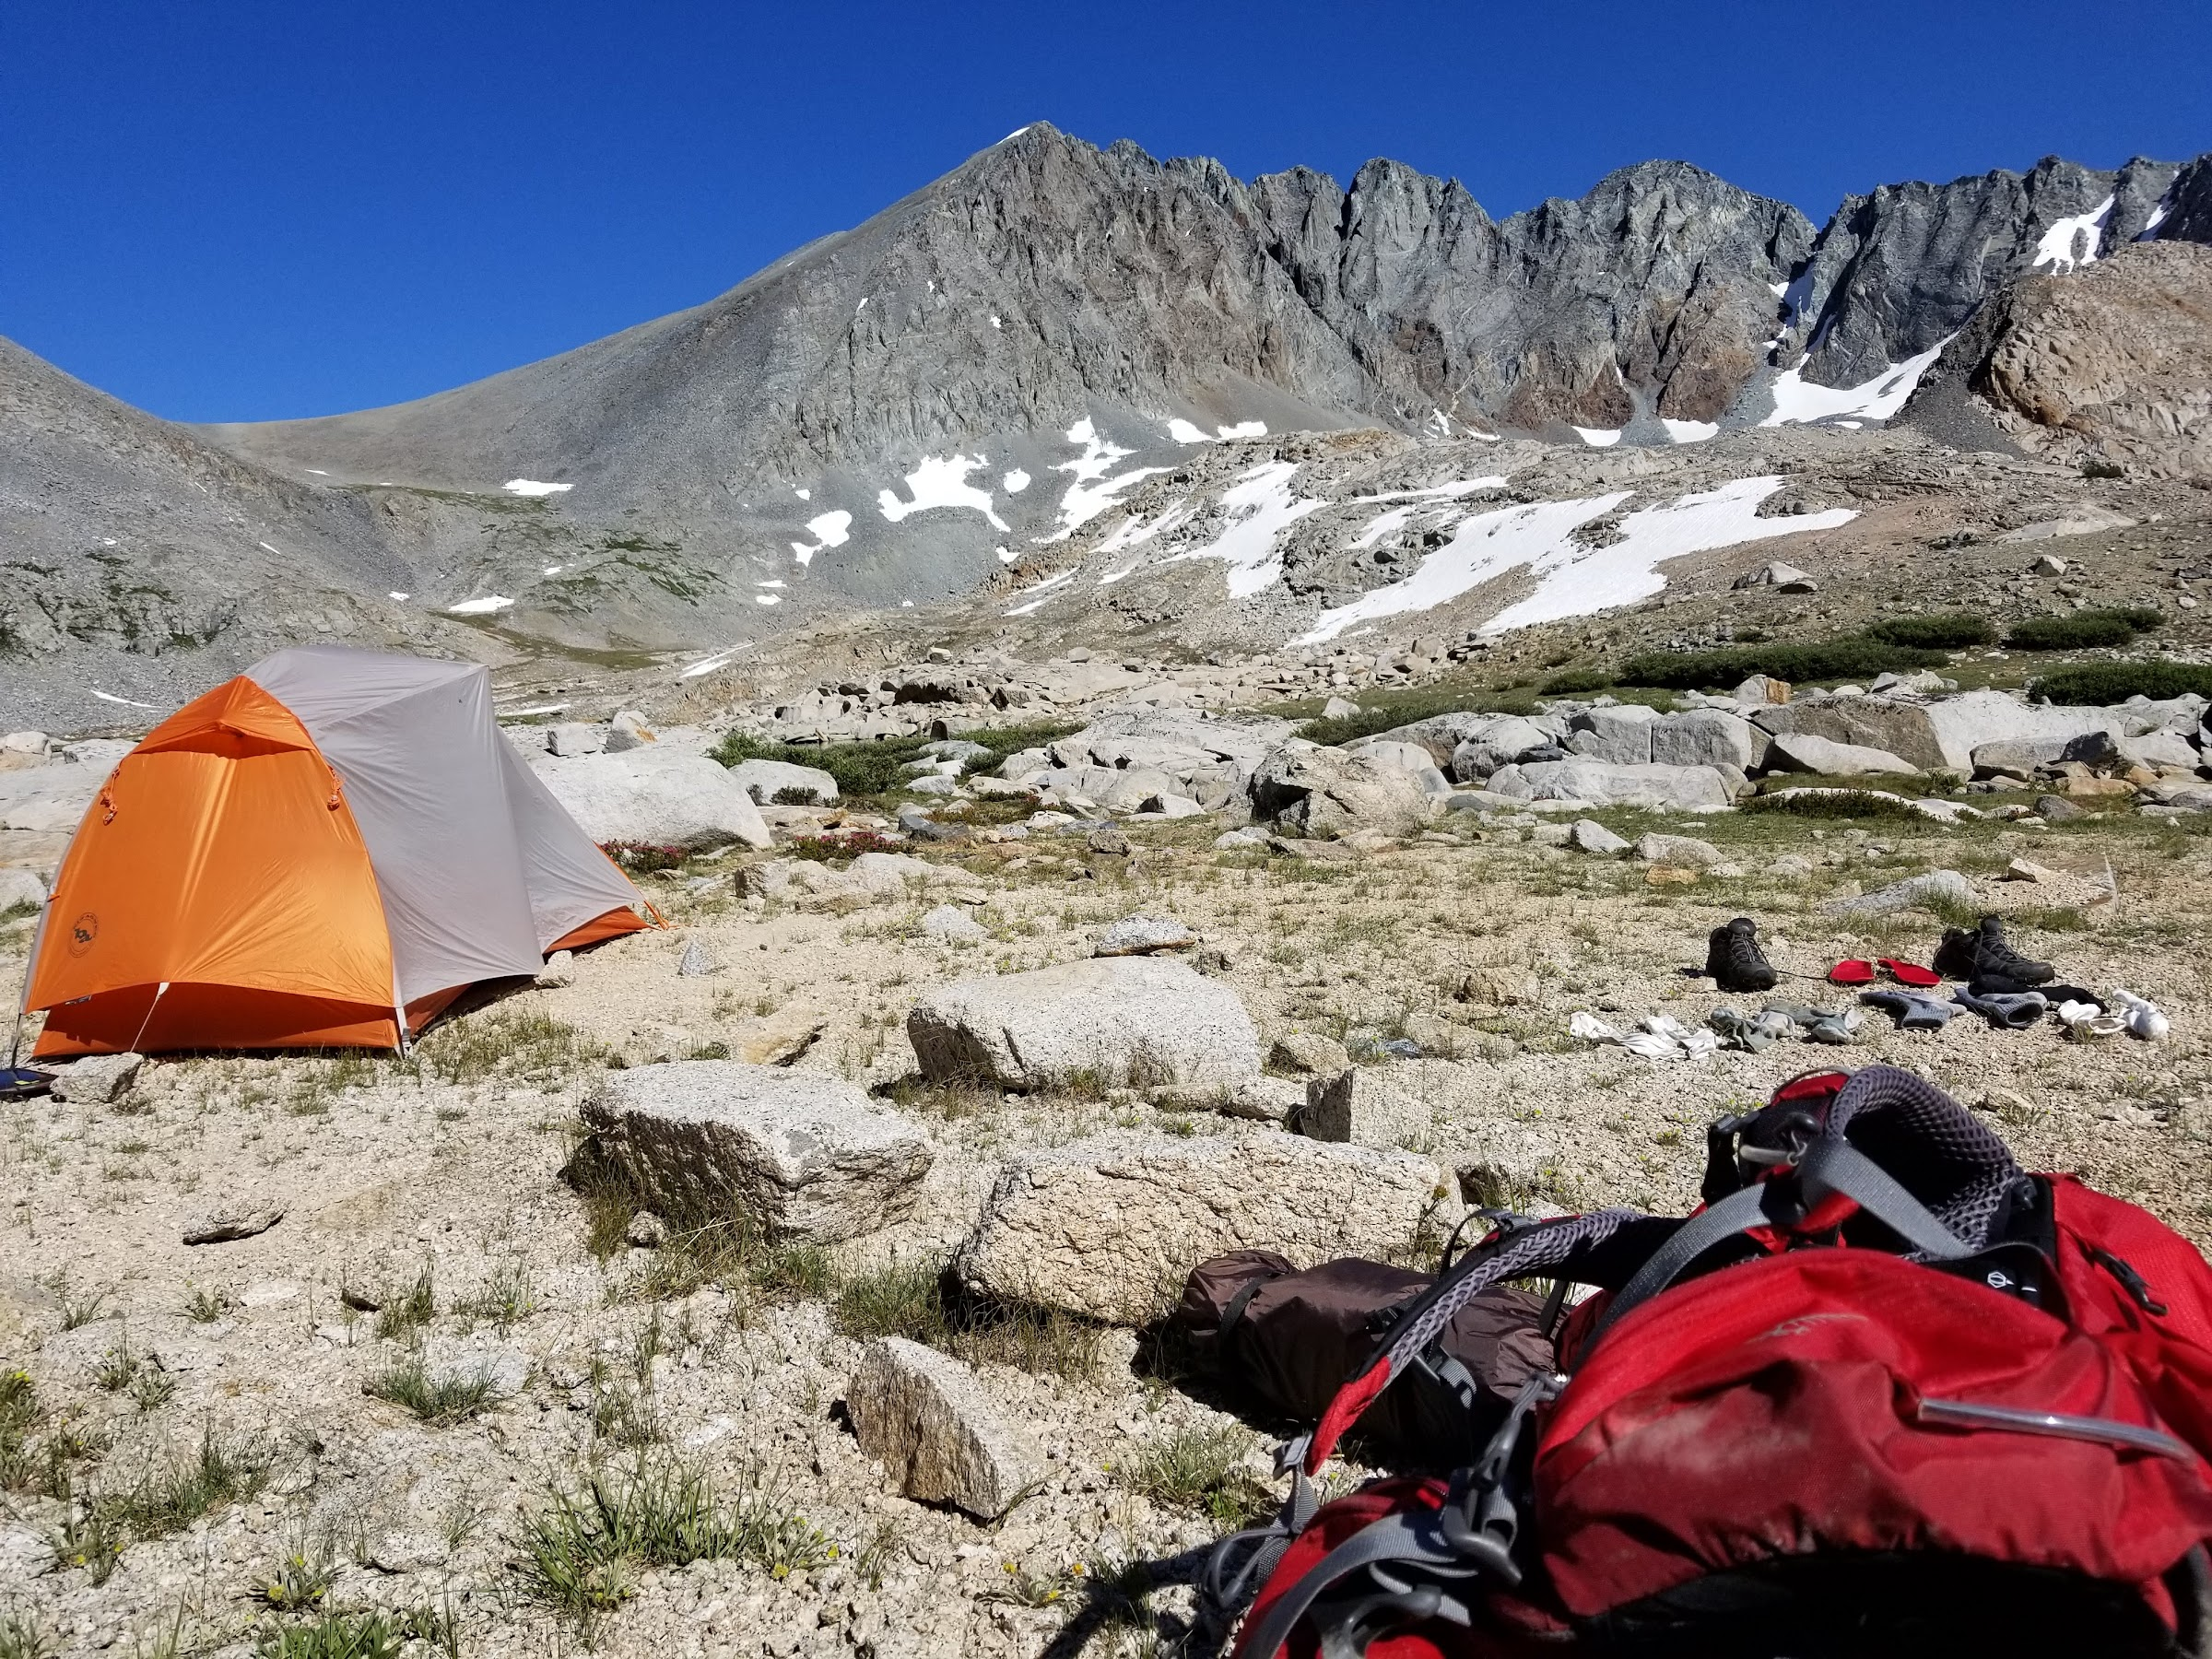 Camp in Upper Basin below Split Mountain